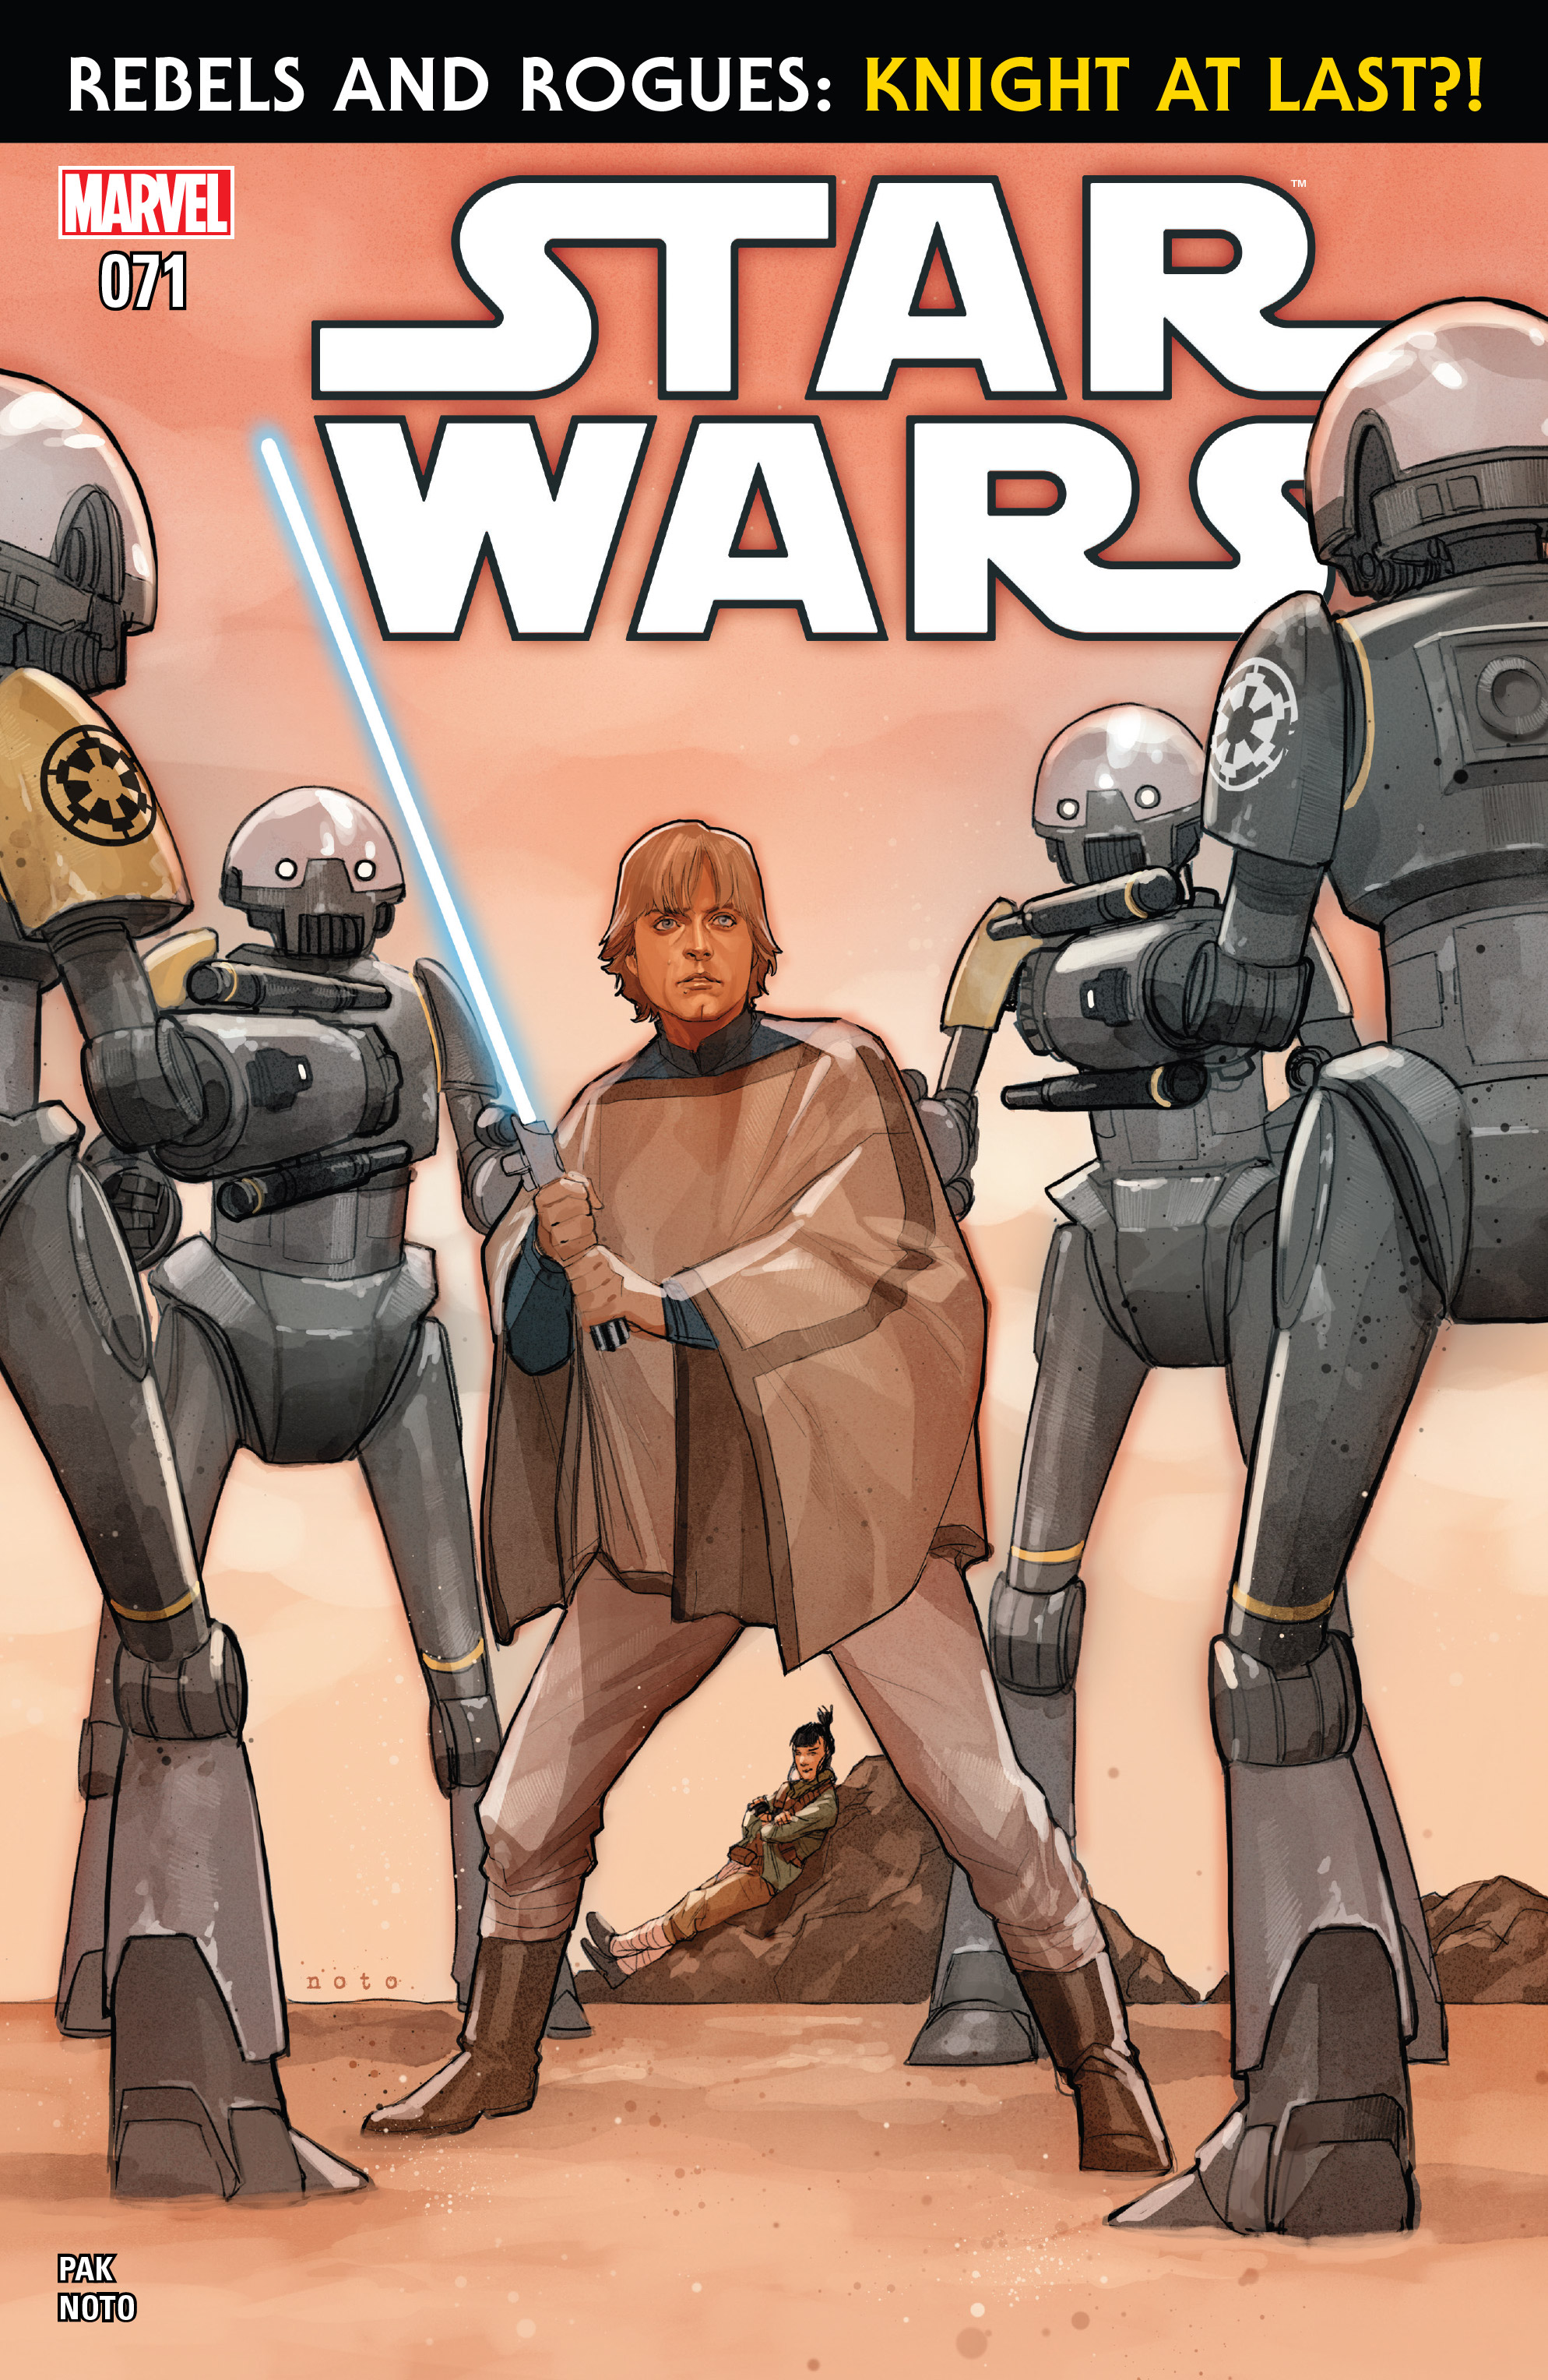 Star Wars 71: Rebels and Rogues, Part IV